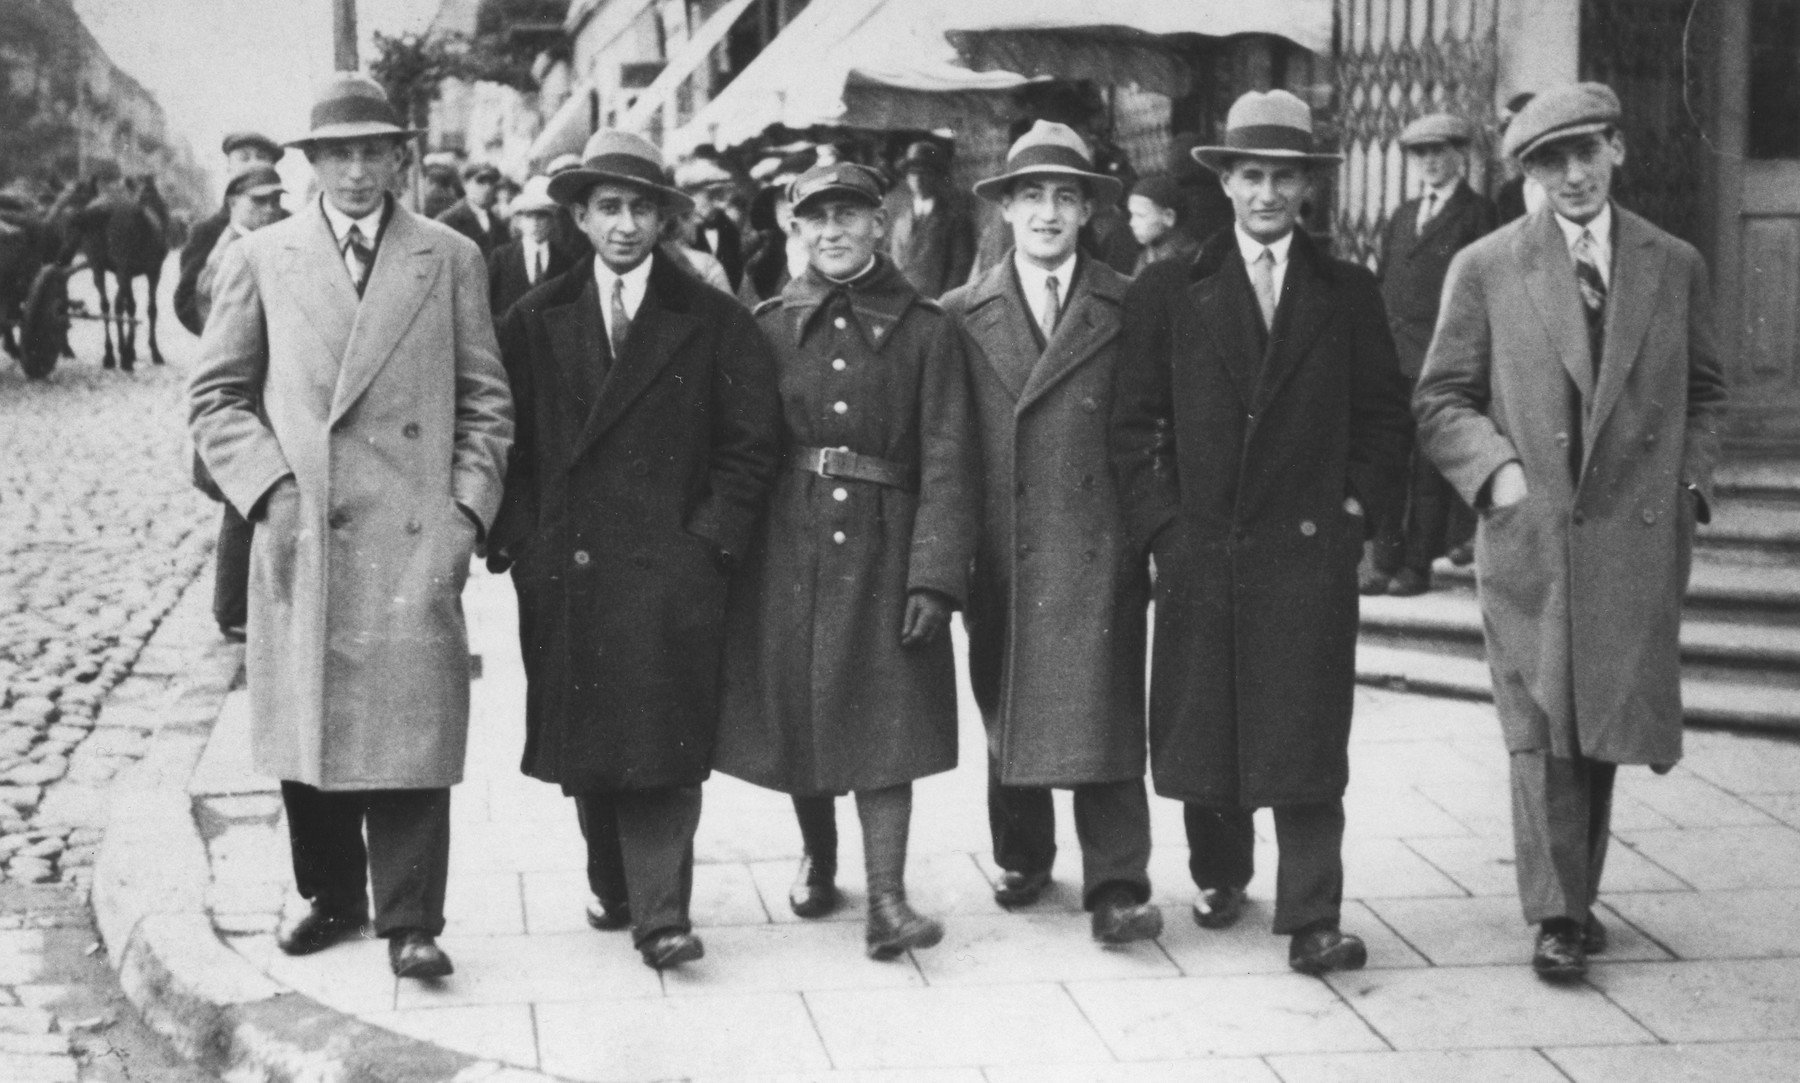 A group of Jewish friends walk along the main street of Piotrkow Trybunalski.  Pictured from left to right are: Weinberg, Schmel Lieberman, Itchak Rosencweig, Schmuel David Horn, and Boruch Hersh Weinberg.